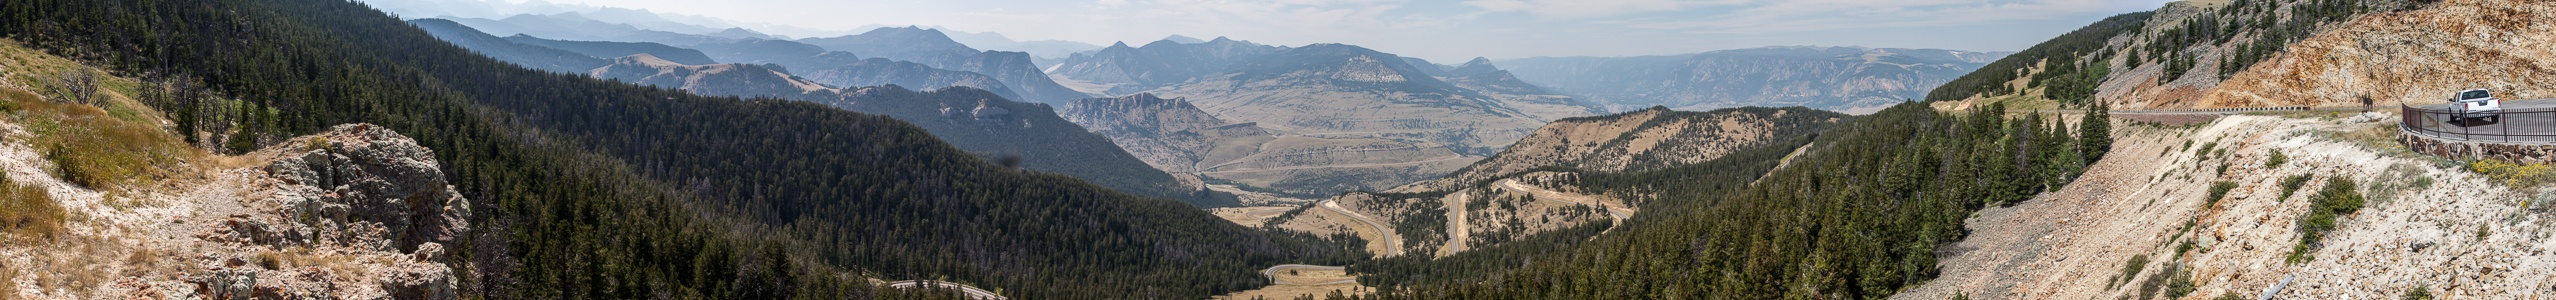 Wyoming Blick vom Dead Indian Pass: Shoshone National Forest Wyoming Highway 296